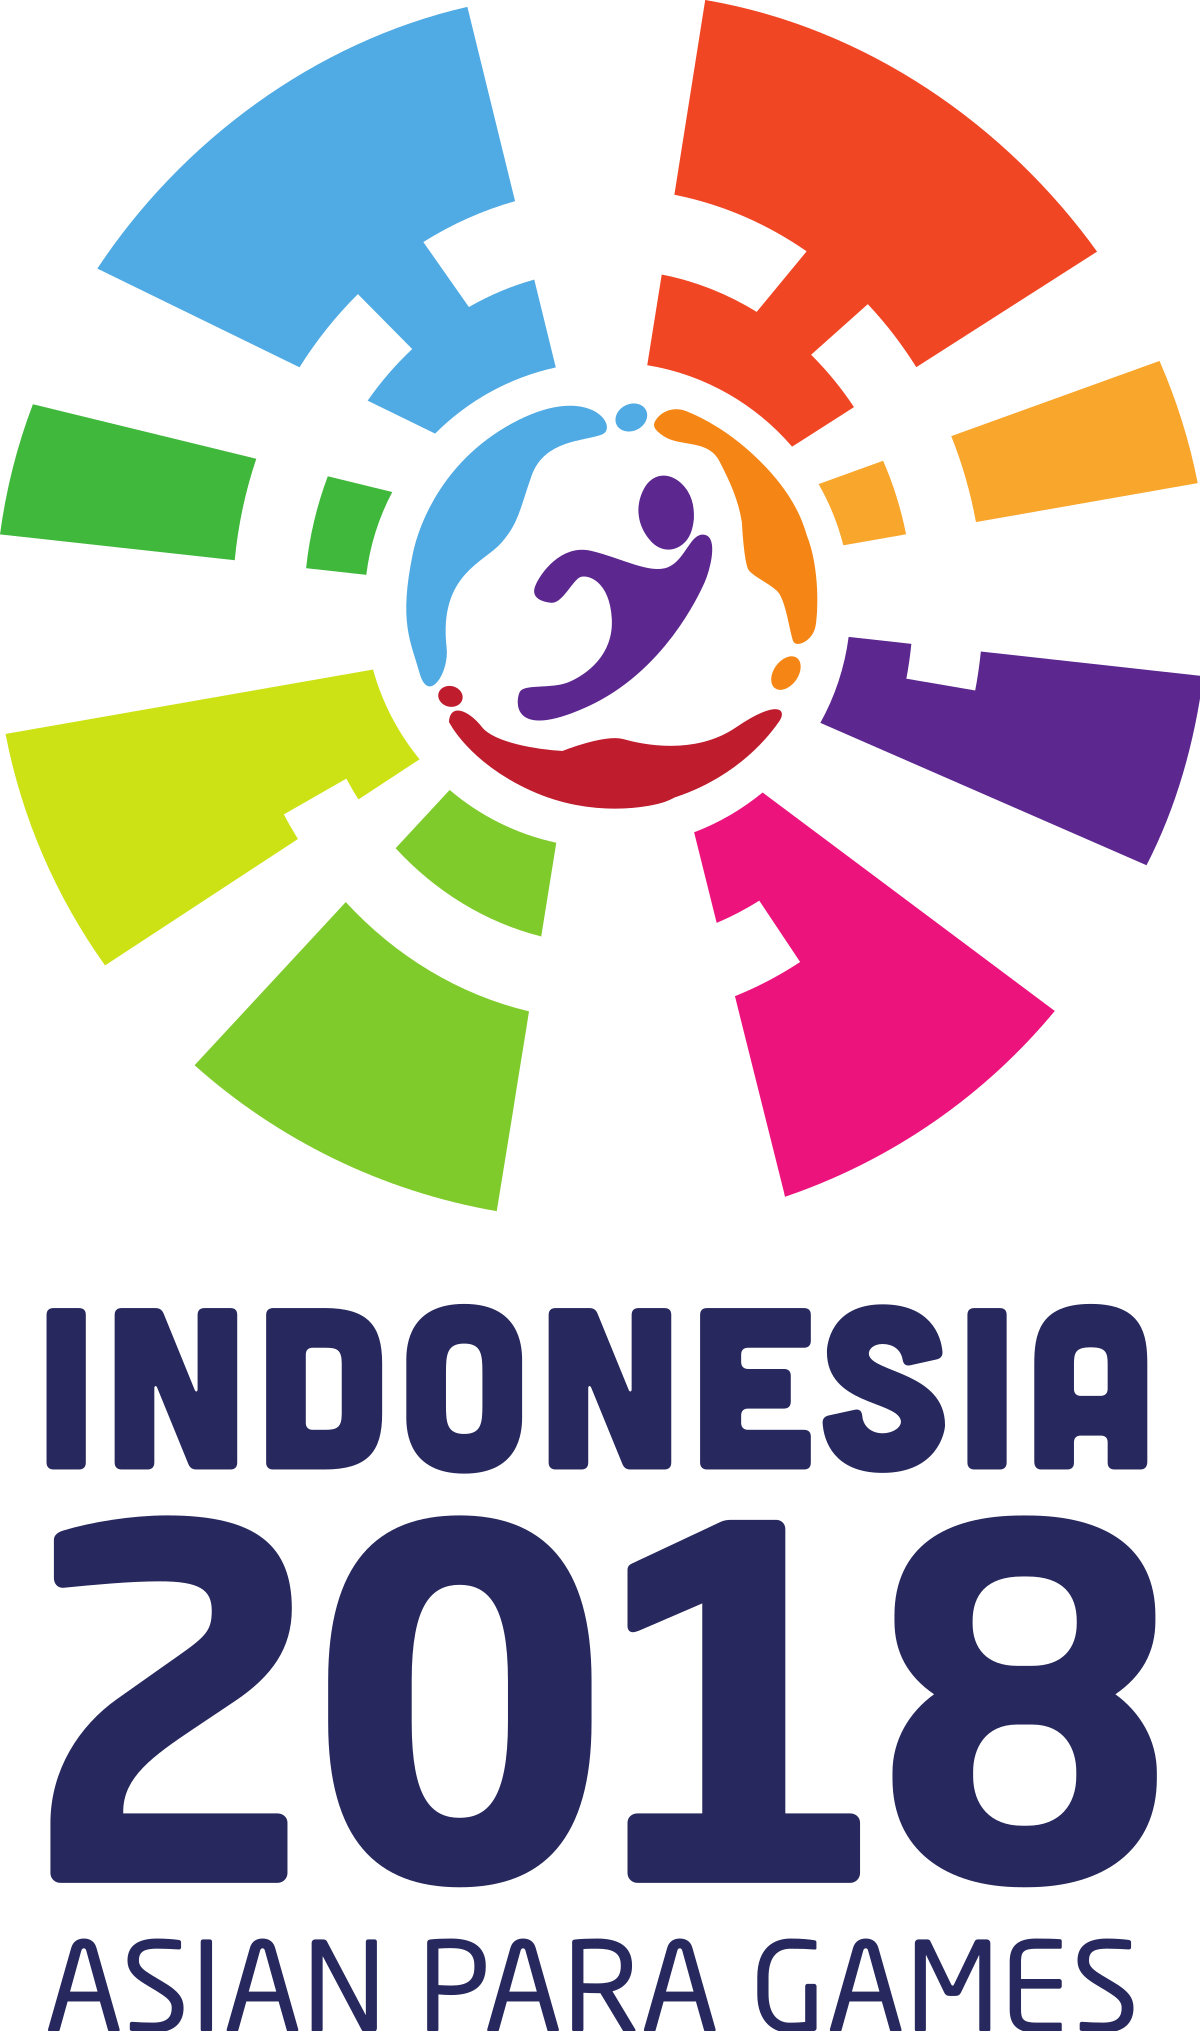 Indonesia vector poster. Asian para games